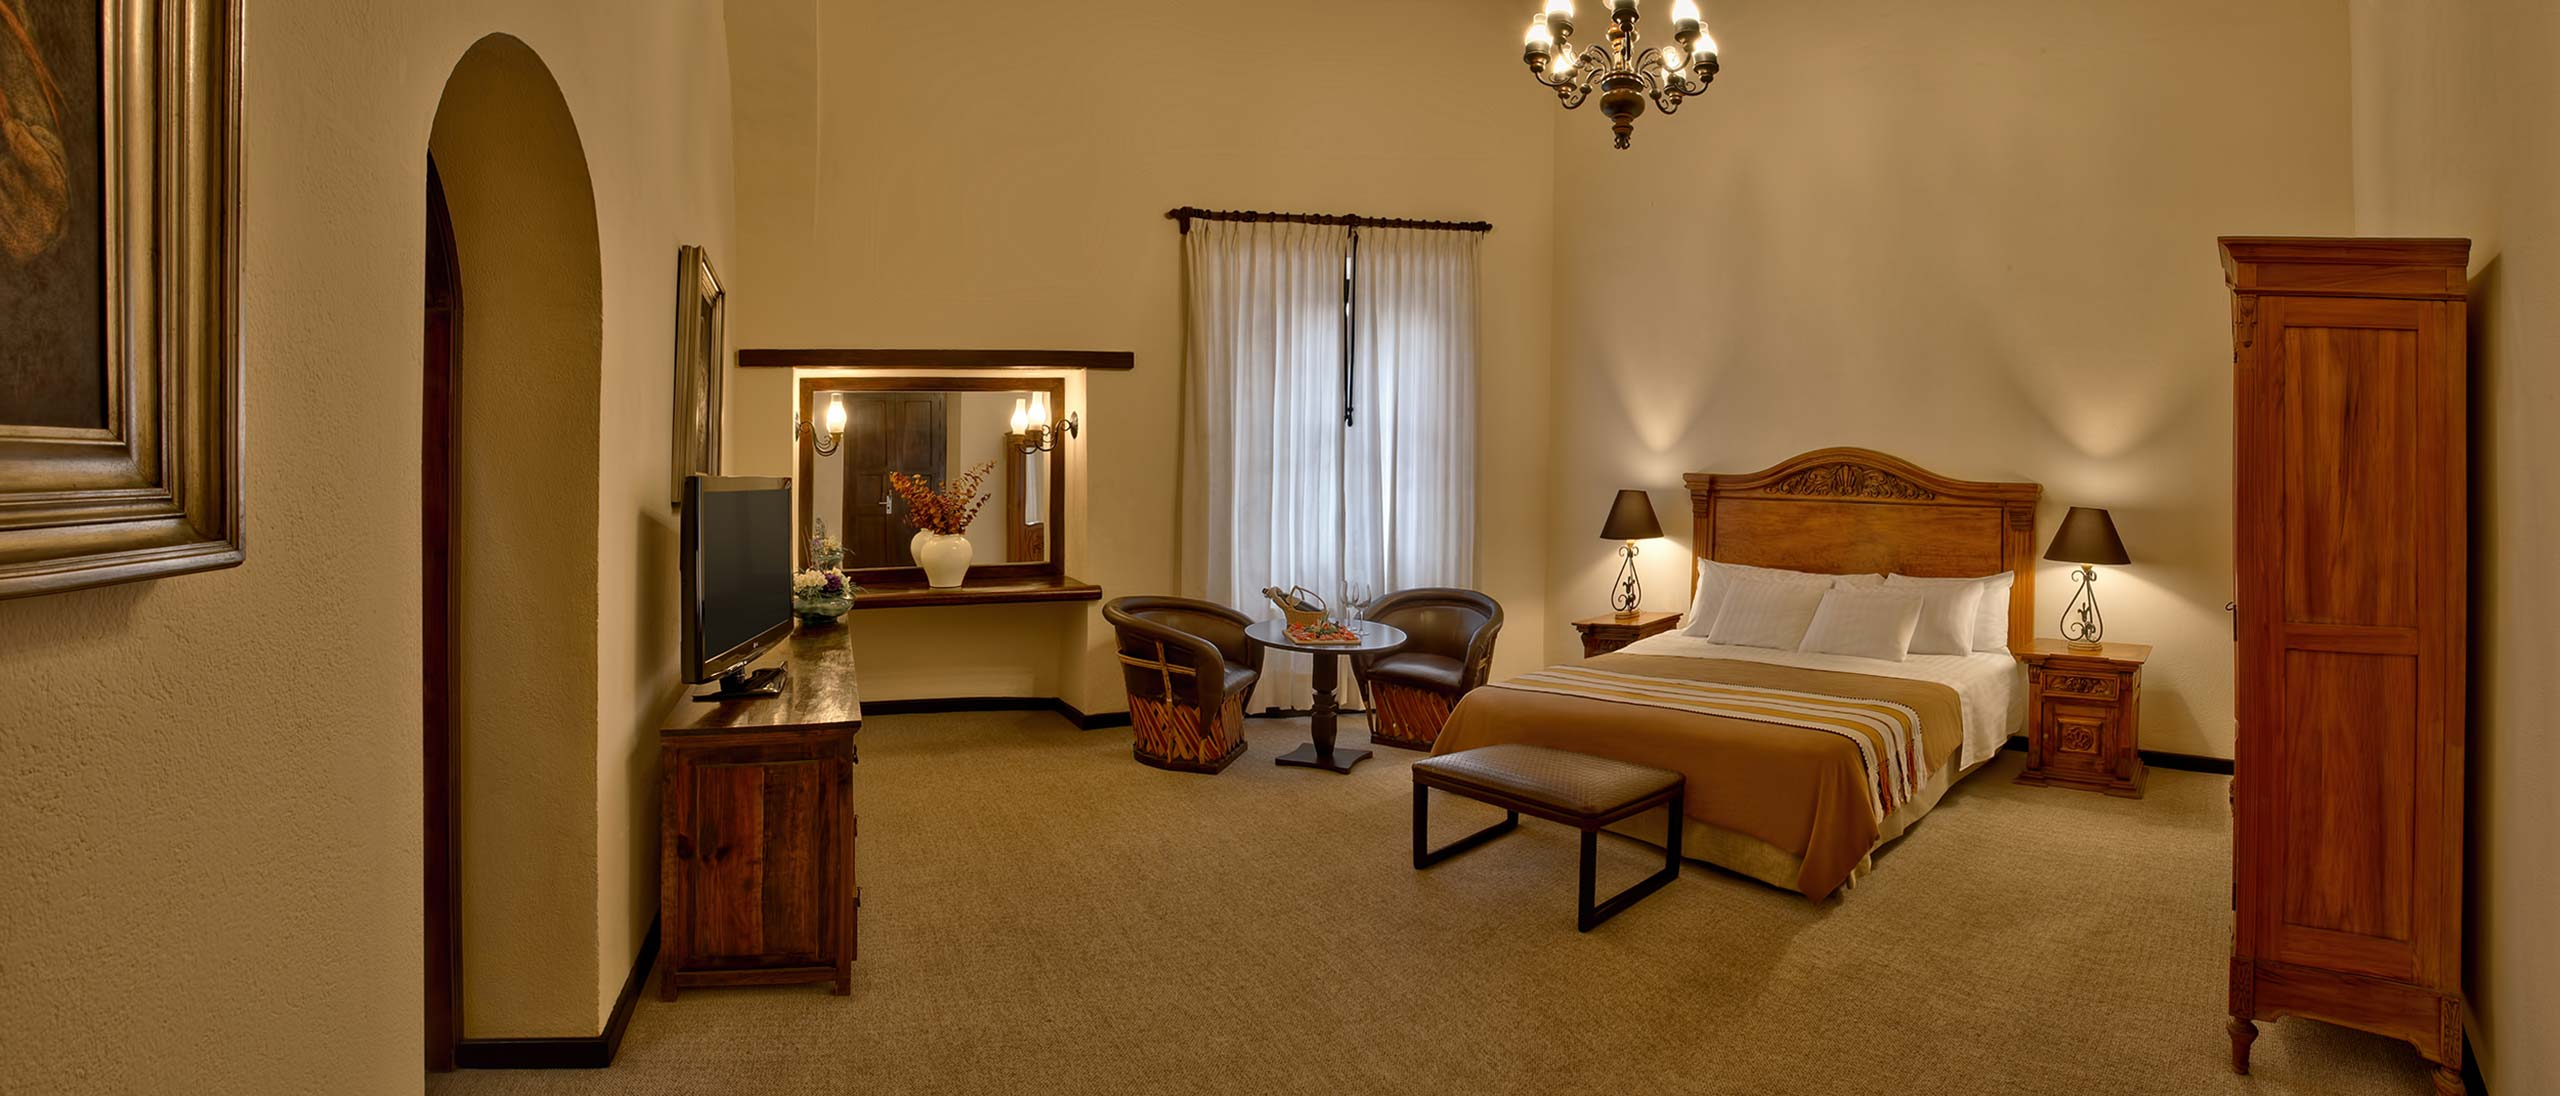 Master Suite one bed Hotel Hacienda Jurica by Brisas Queretaro